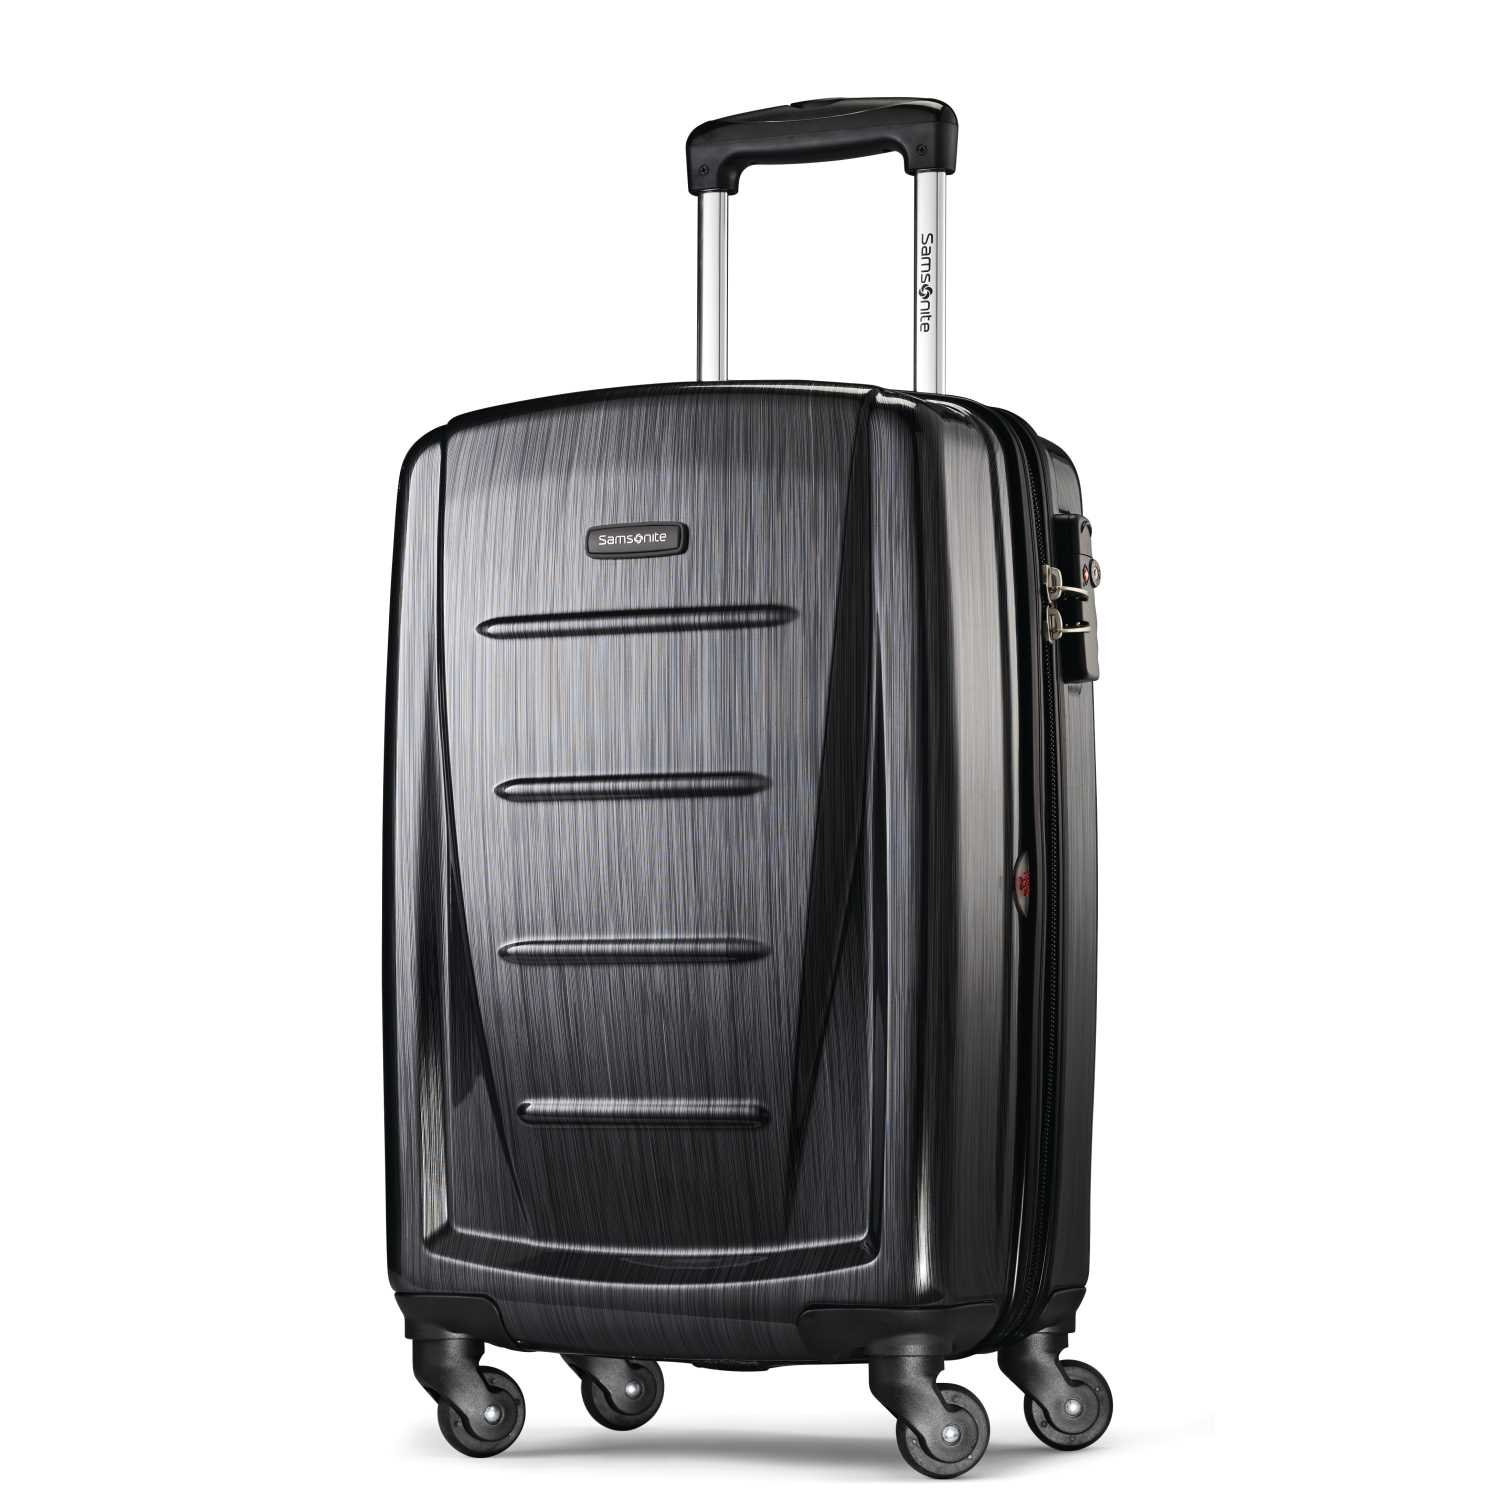 Samsonite Winfield 2 Hardside 20 Luggage, Charcoal Samsonite Corporation 56844